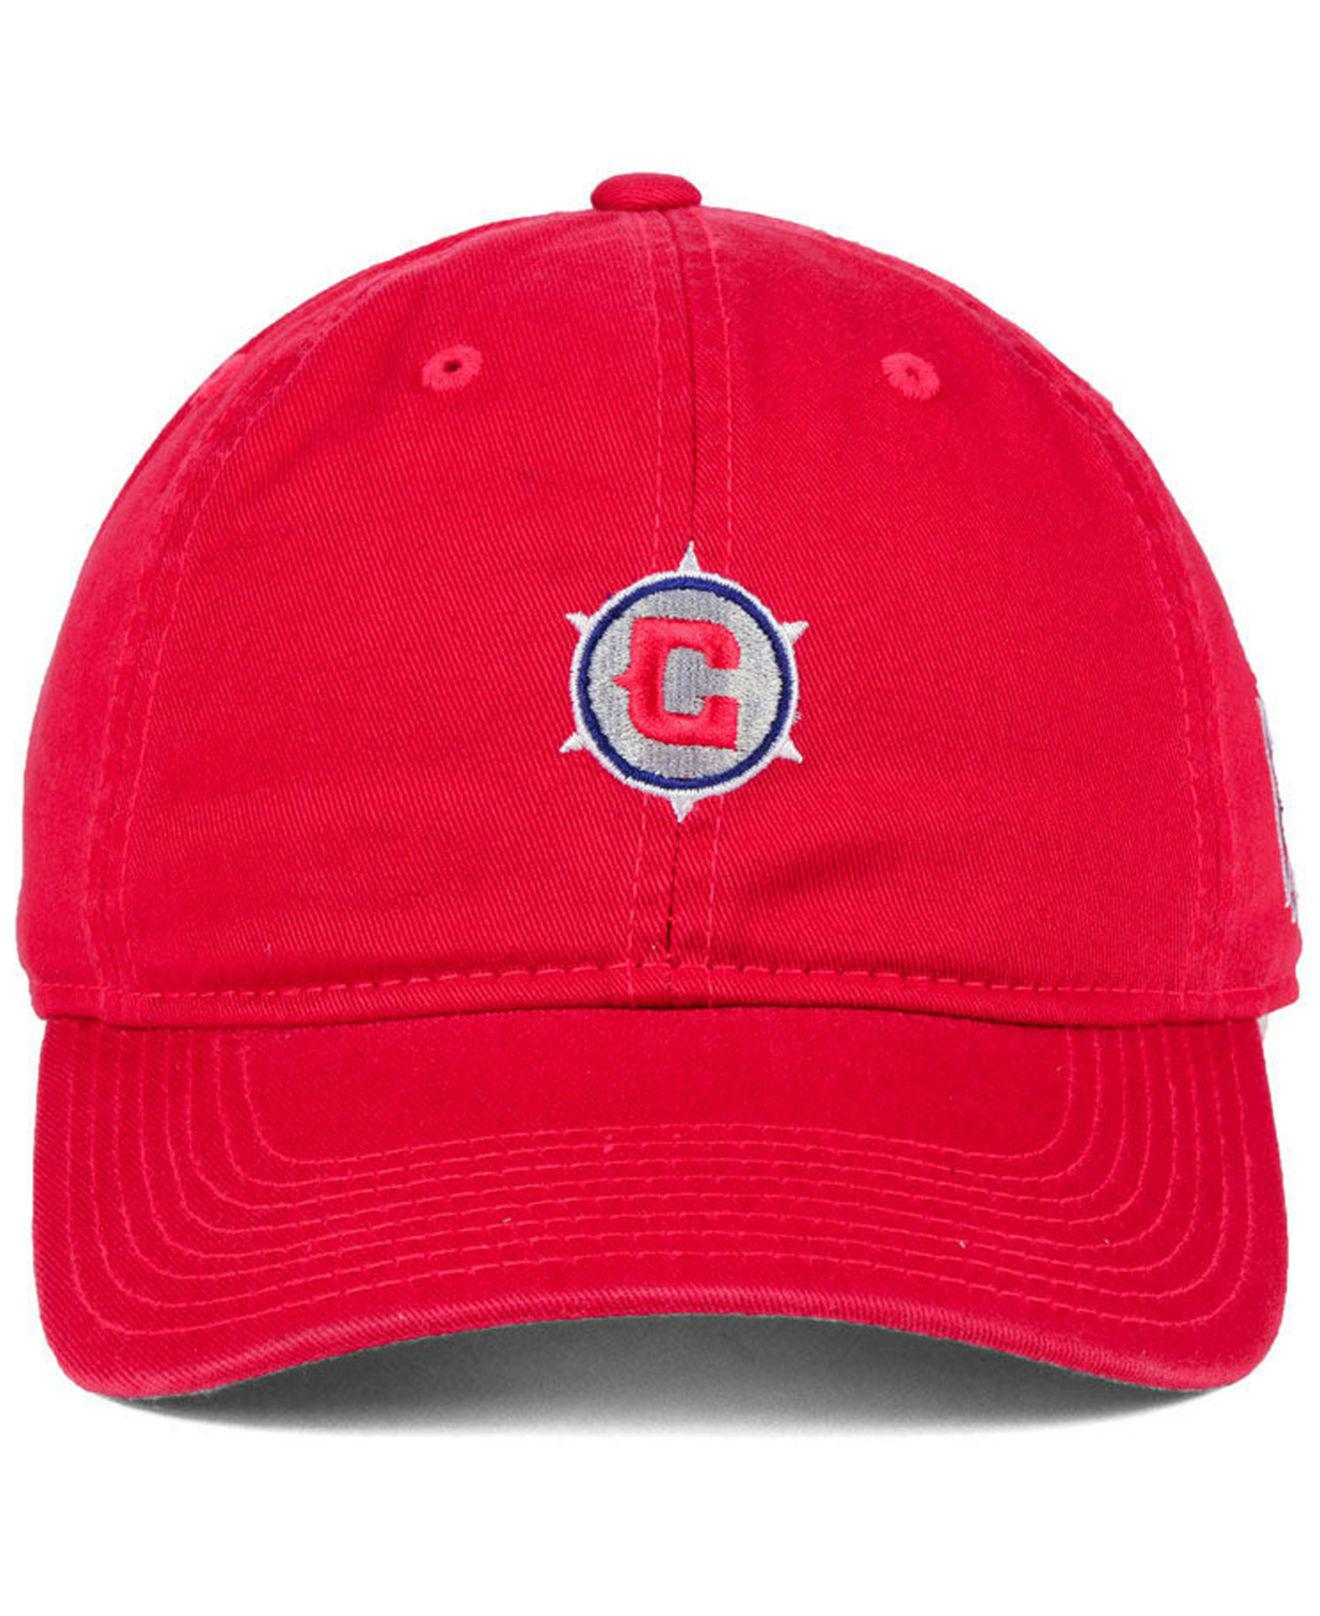 12e863e5054da ... new zealand lyst adidas chicago fire partial logo dad cap in red for men  save 25.0